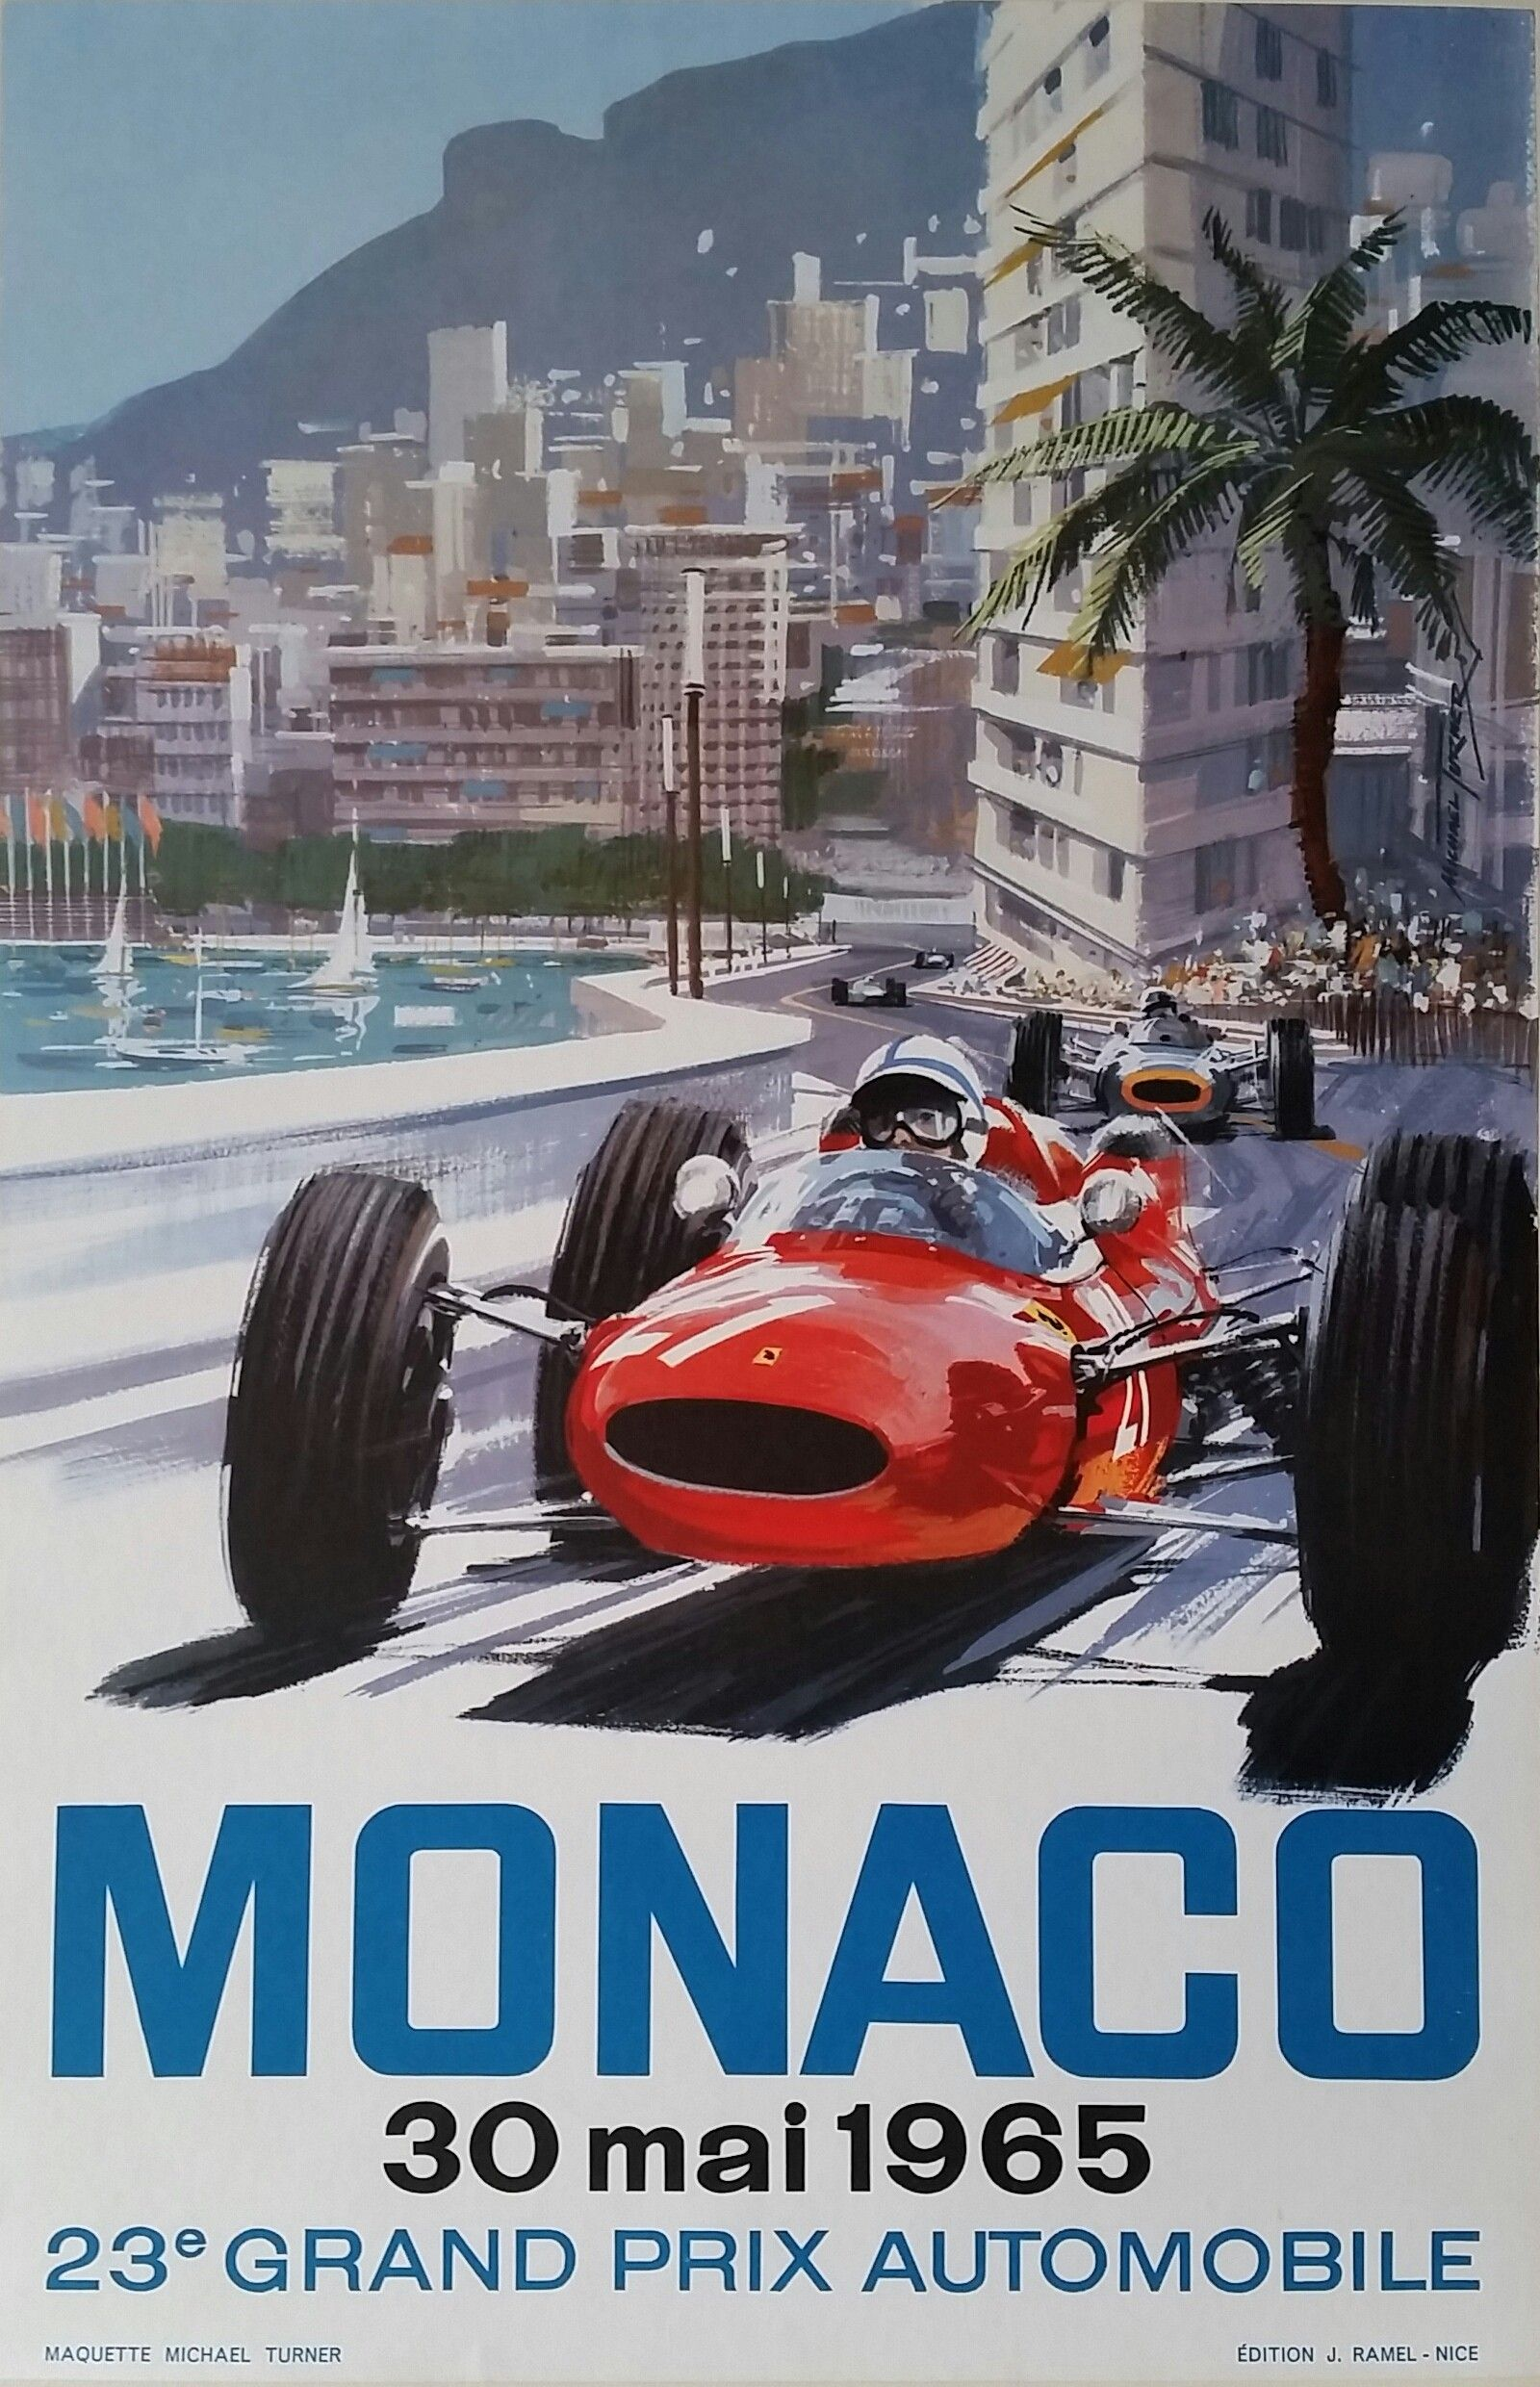 Wall Art 6th April 1930 Reproduction Vintage Monaco Grand Prix Poster